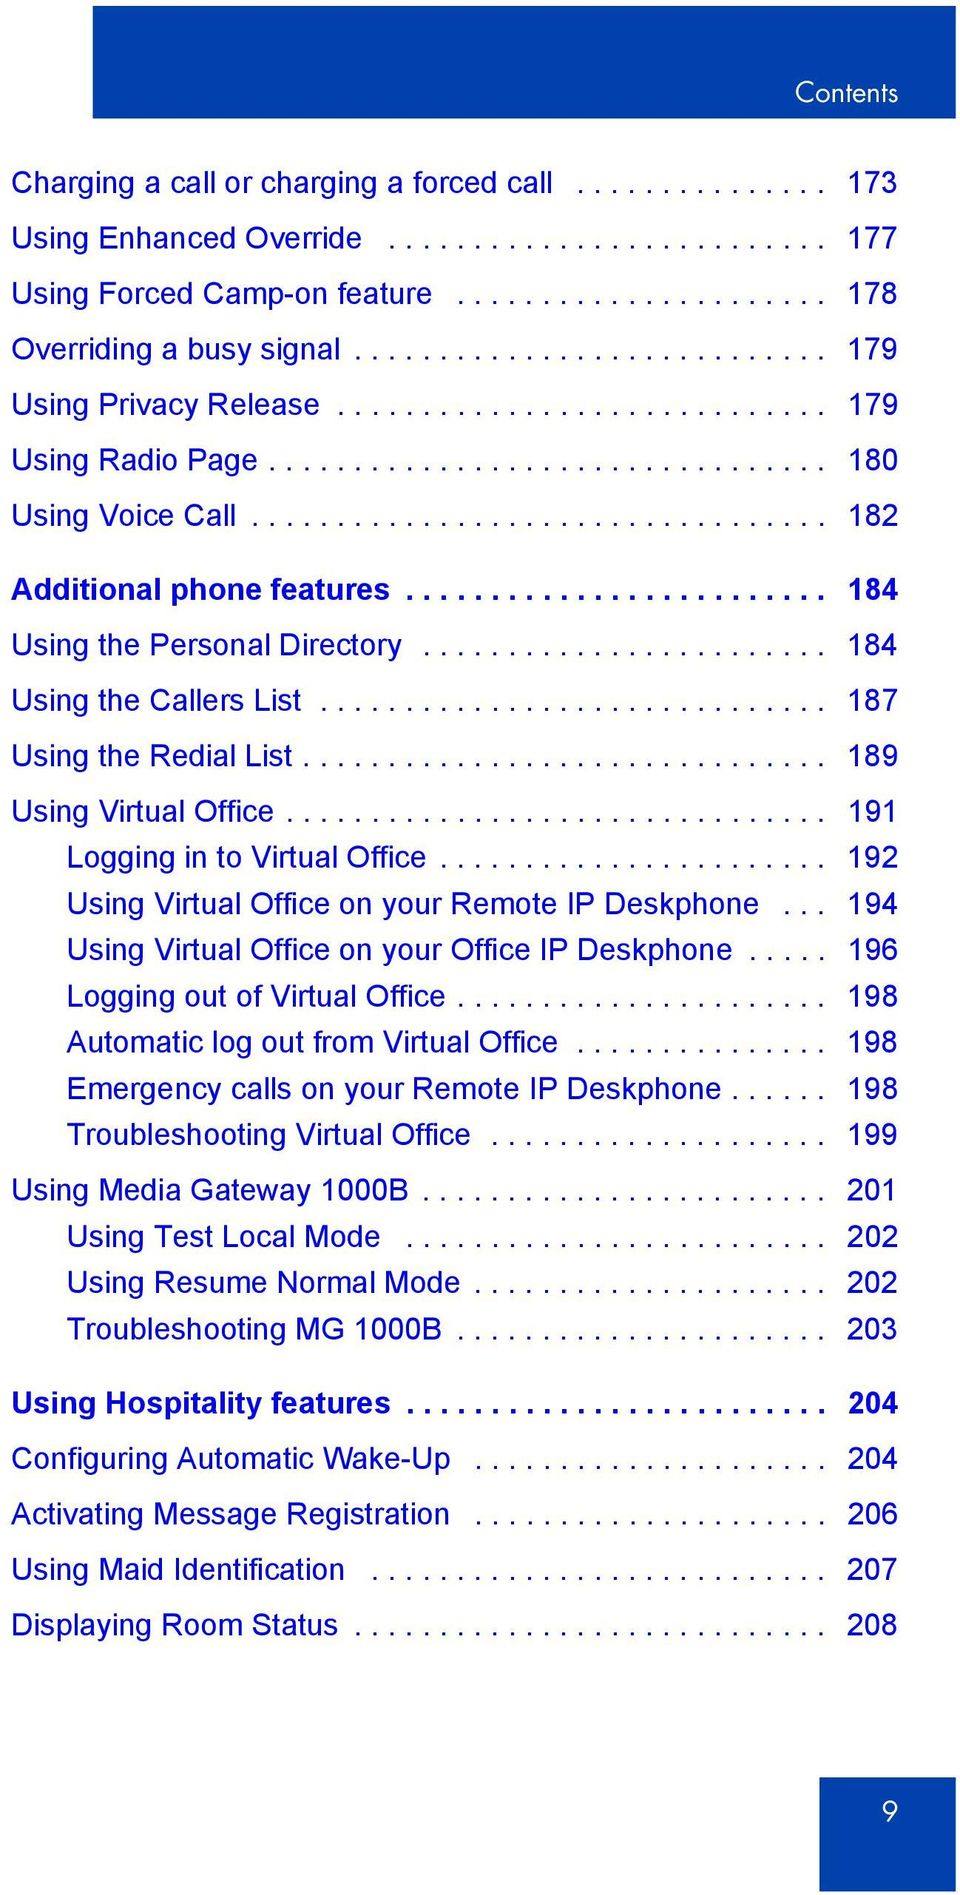 ........................ 184 Using the Personal Directory........................ 184 Using the Callers List.............................. 187 Using the Redial List............................... 189 Using Virtual Office.